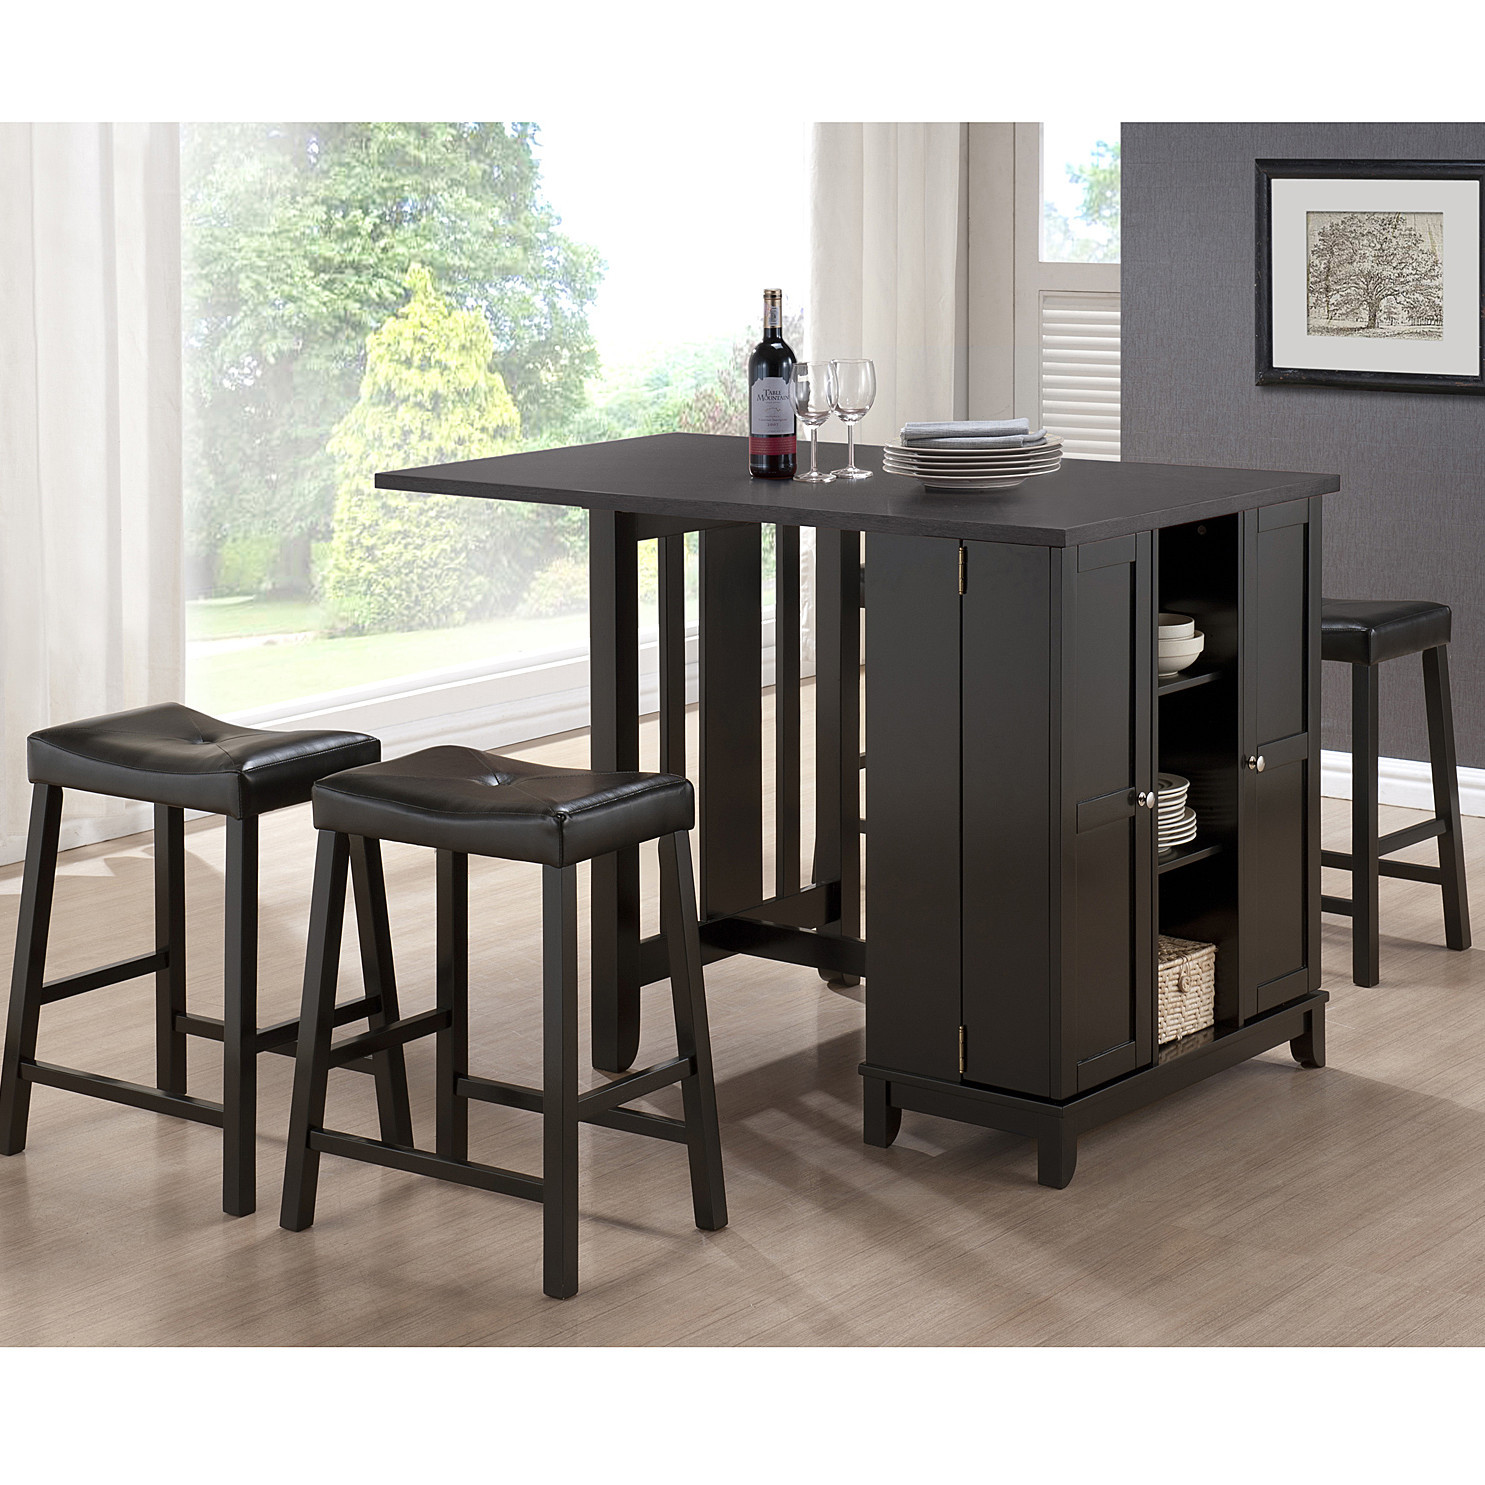 Best ideas about Dining Table With Storage . Save or Pin Wholesale Interiors Baxton Studio Aurora 5 Piece Dining Now.